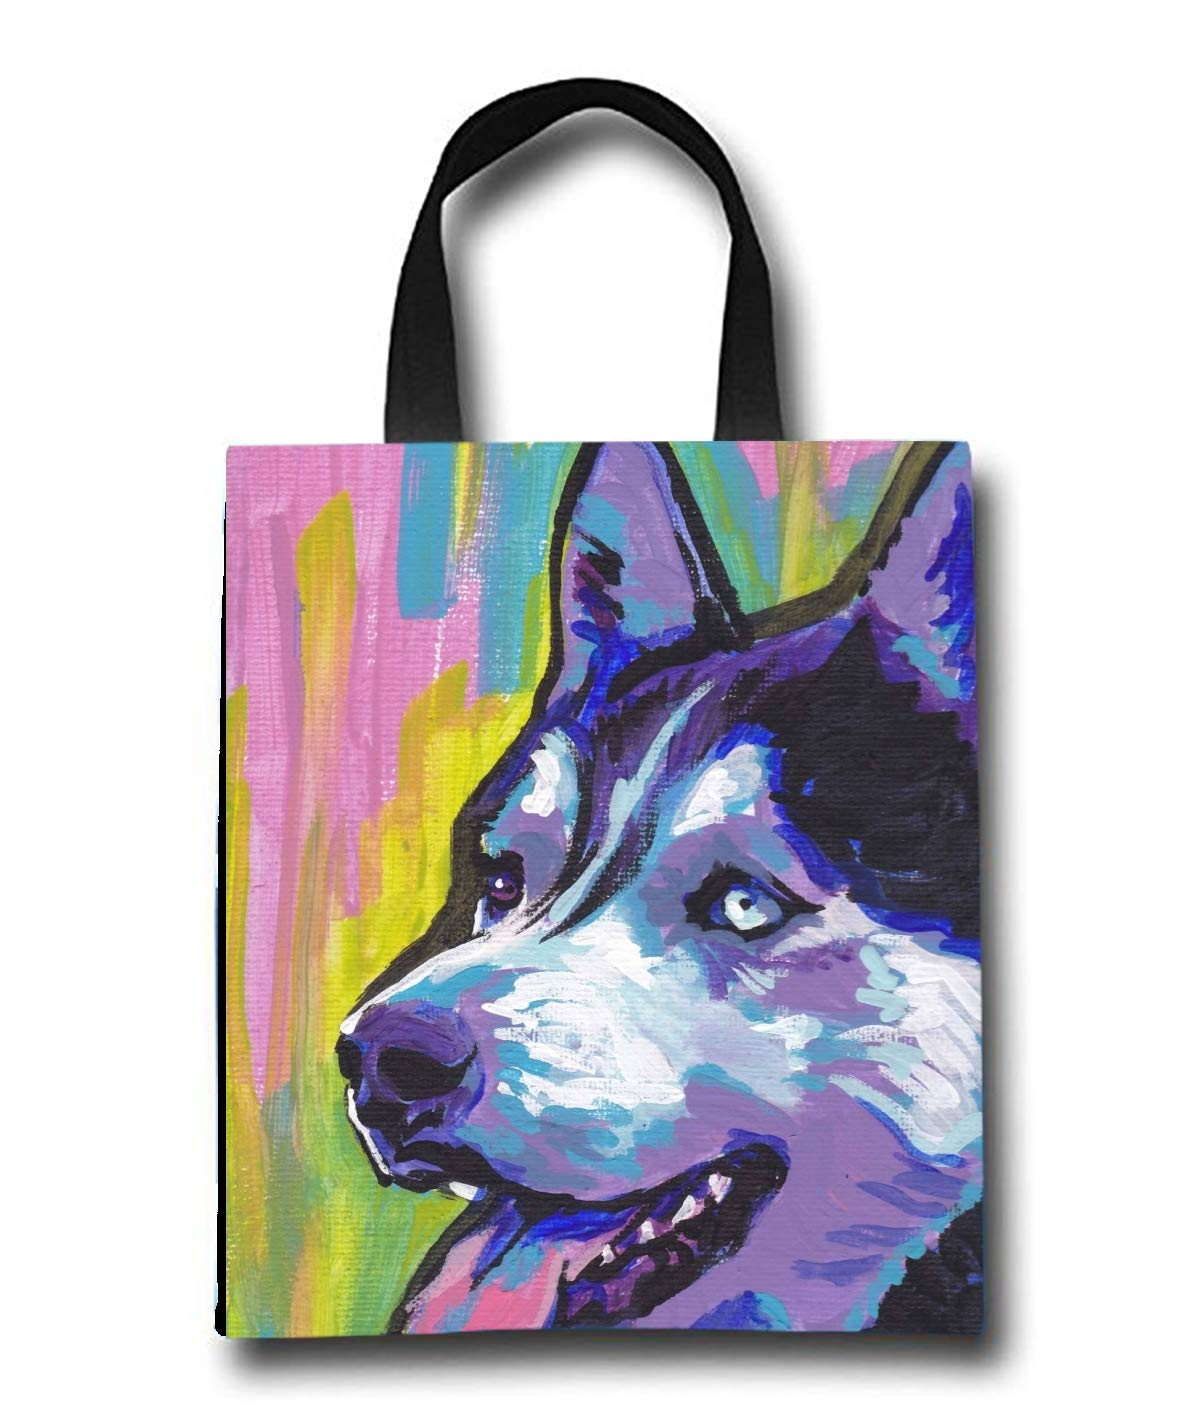 Siberian Husky Beach Tote Bag - Toy Tote Bag - Large Lightweight Market, Grocery & Picnic